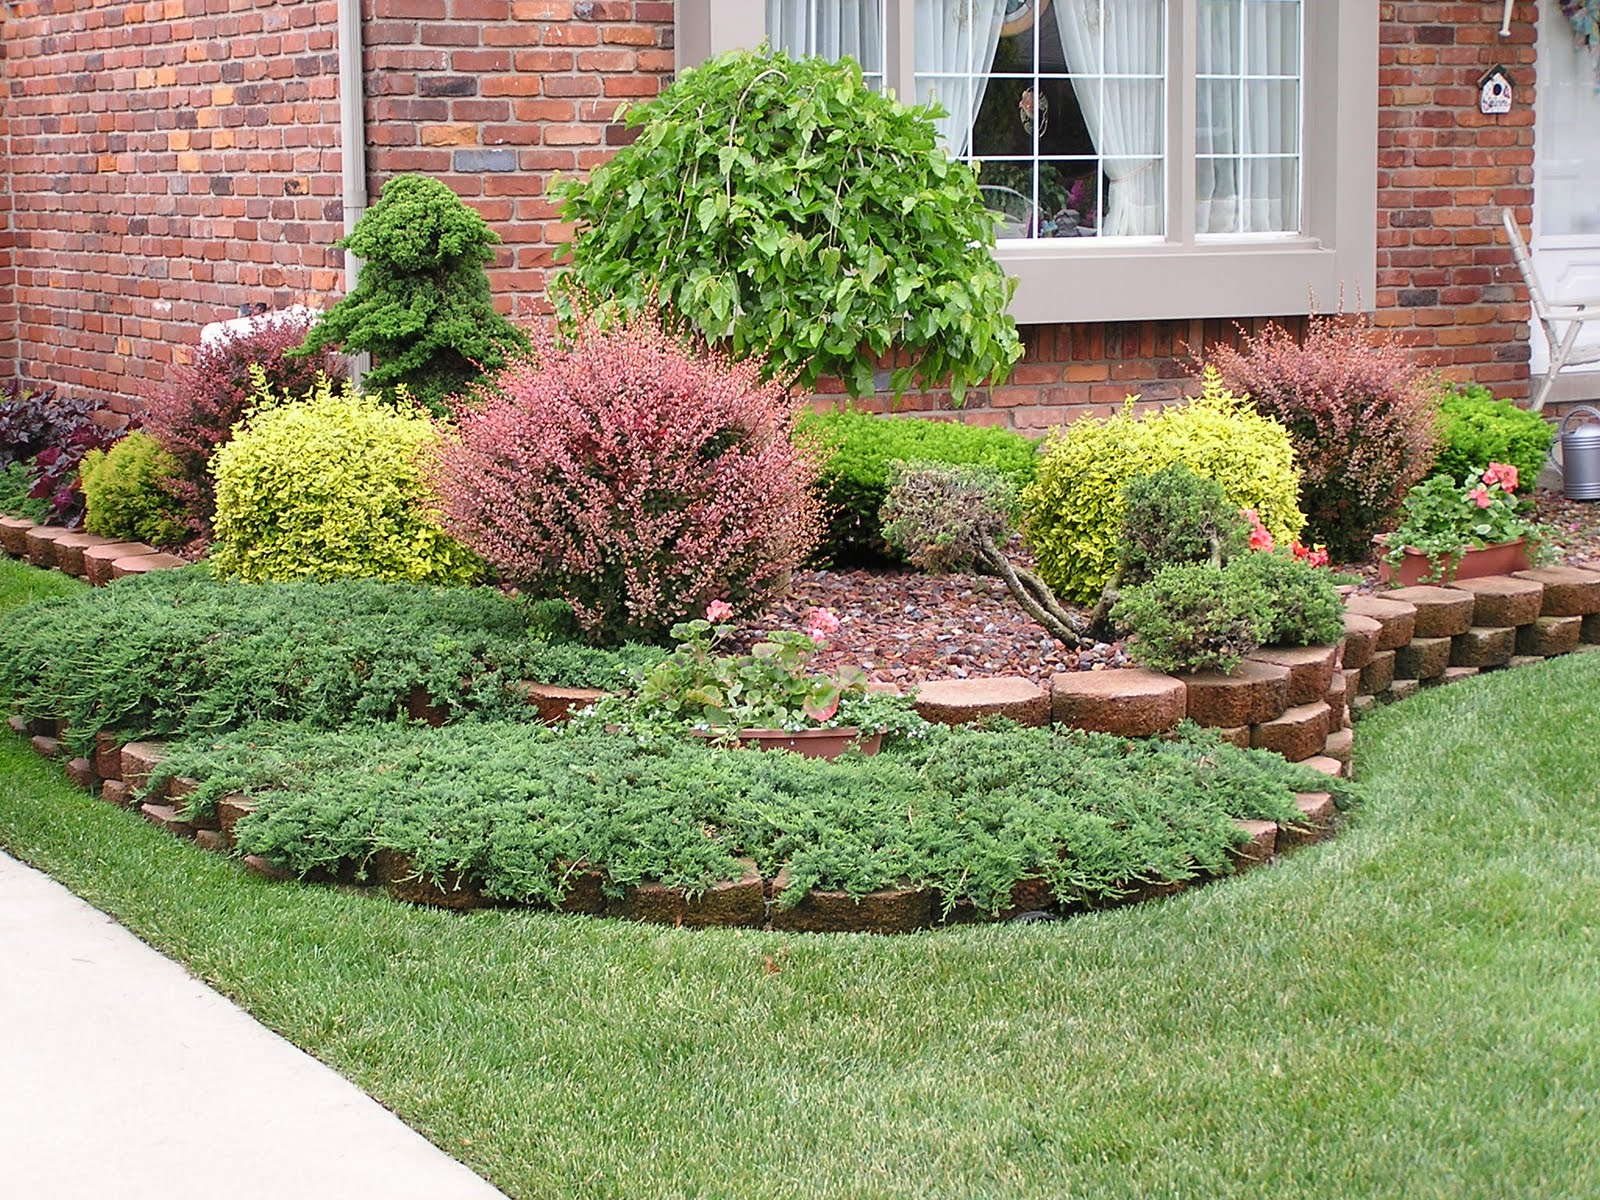 D i y d e s i g n curb appeal part 2 the landscaping for Landscaping rocks and plants